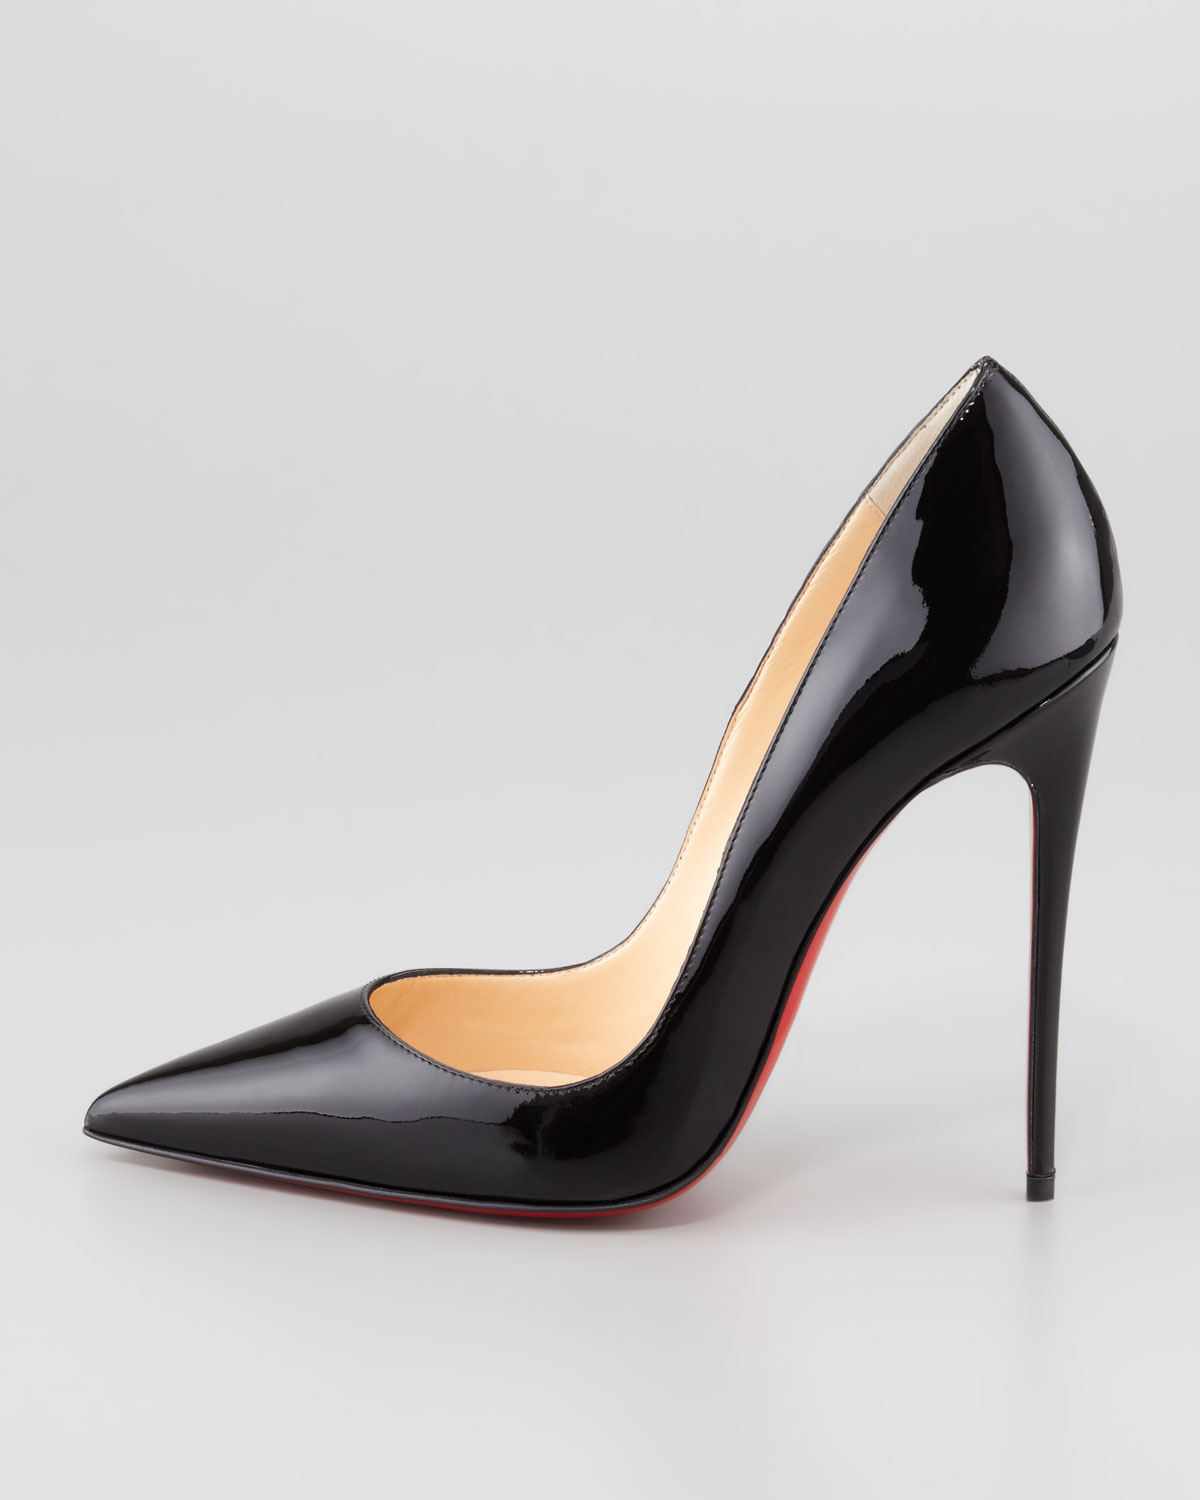 Christian Louboutin Suede Slingback Pumps Christian